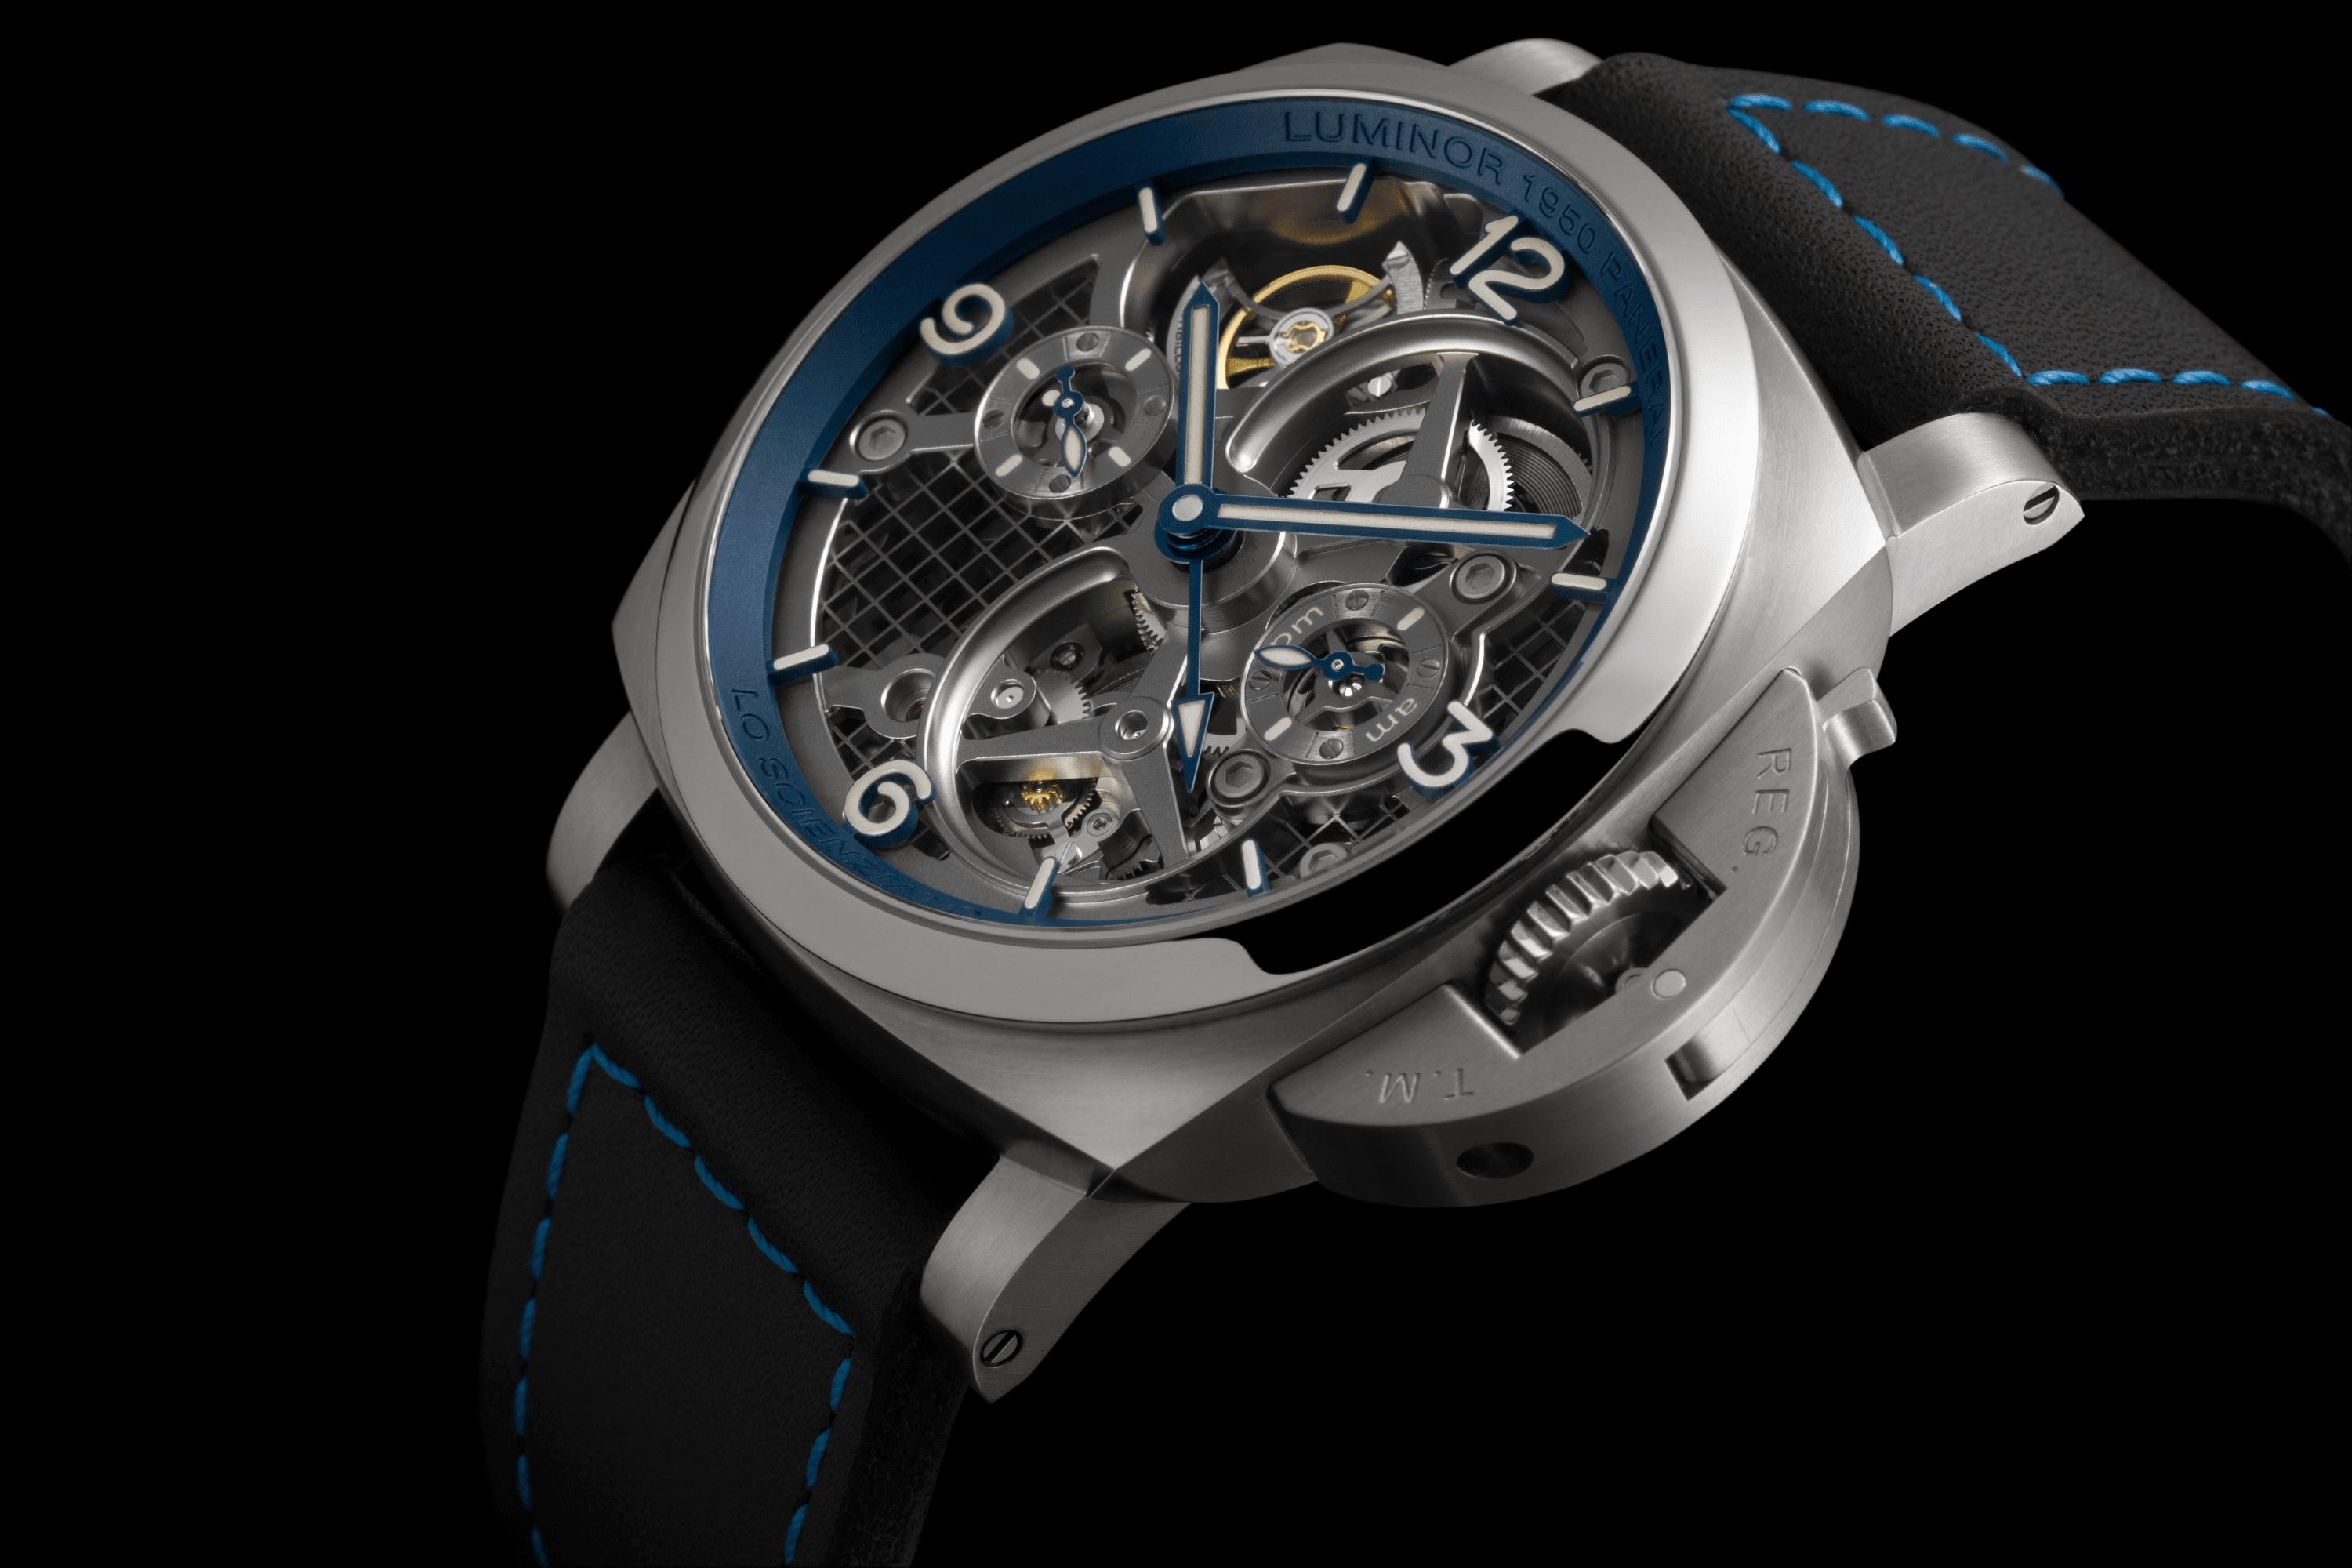 PNPAM00767 - Luminor Tourbillon GMT - 47mm腕錶